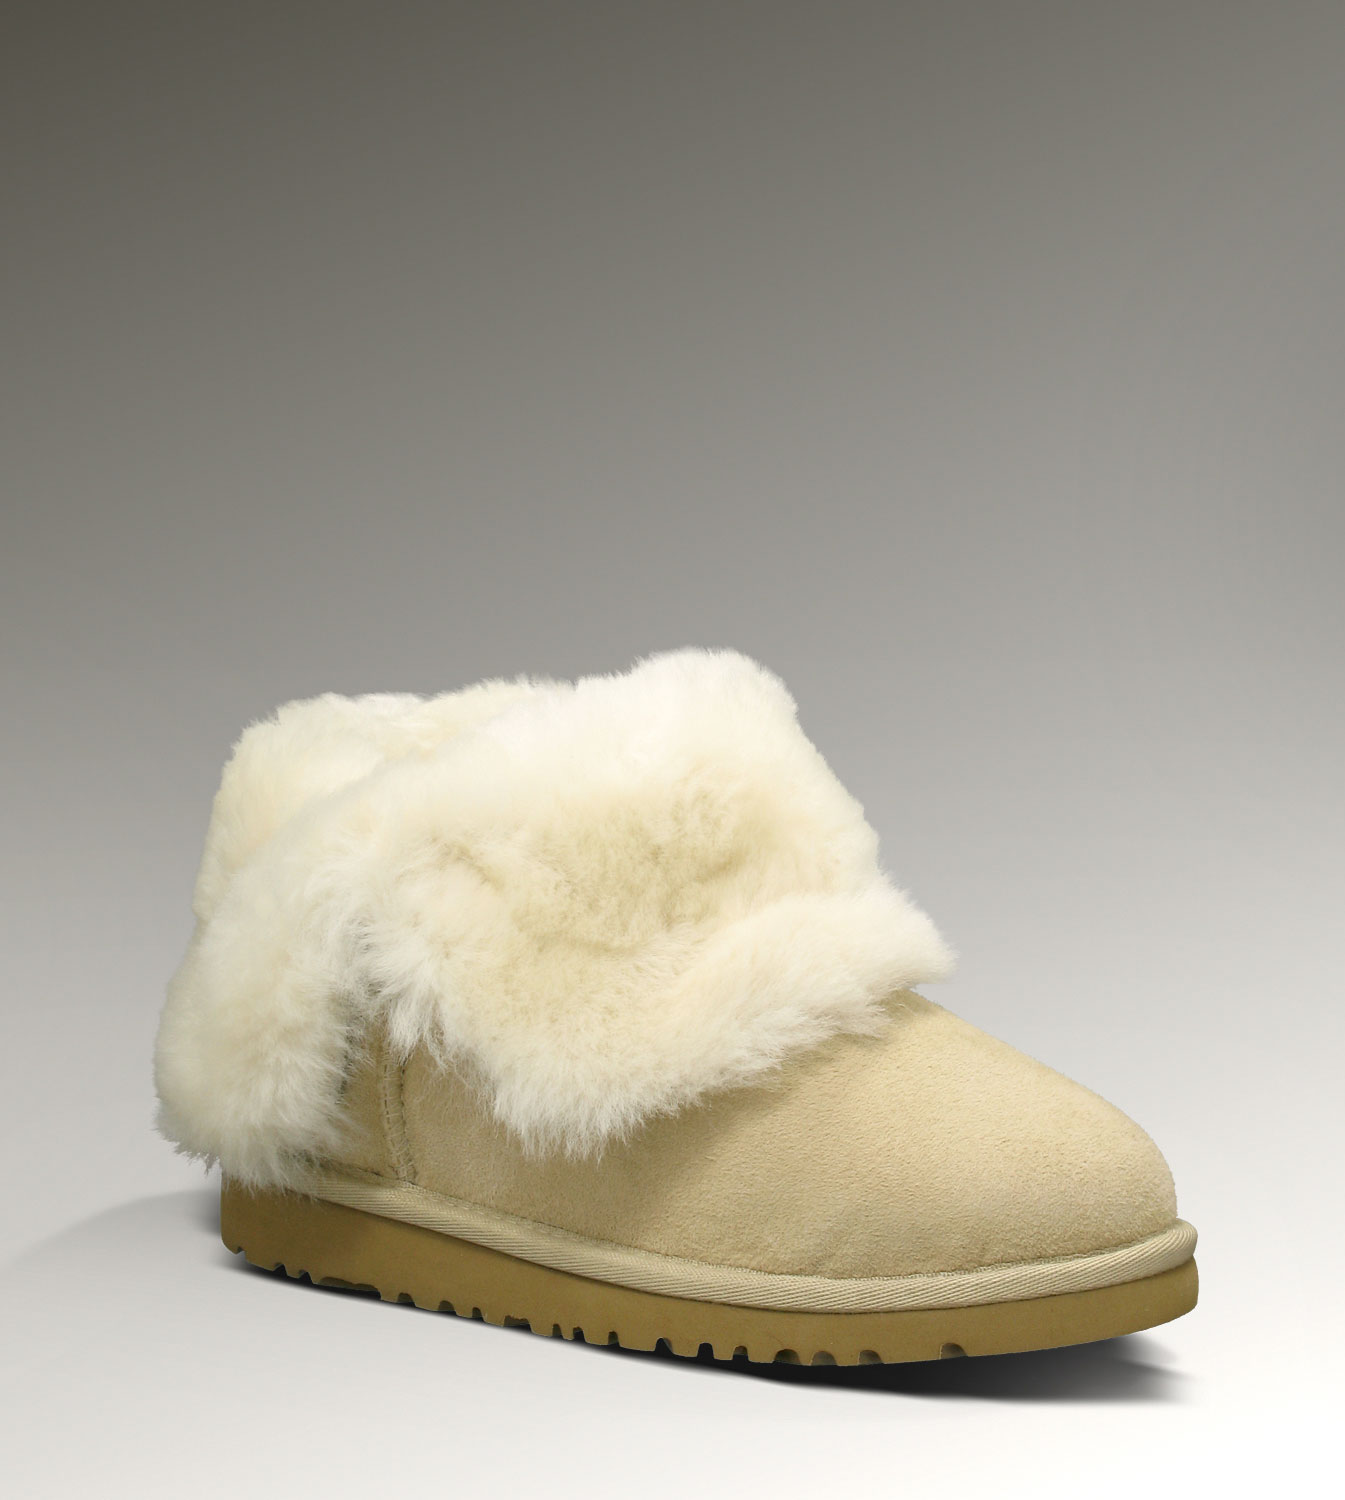 UGG Bailey Button 5991 Sand Boots